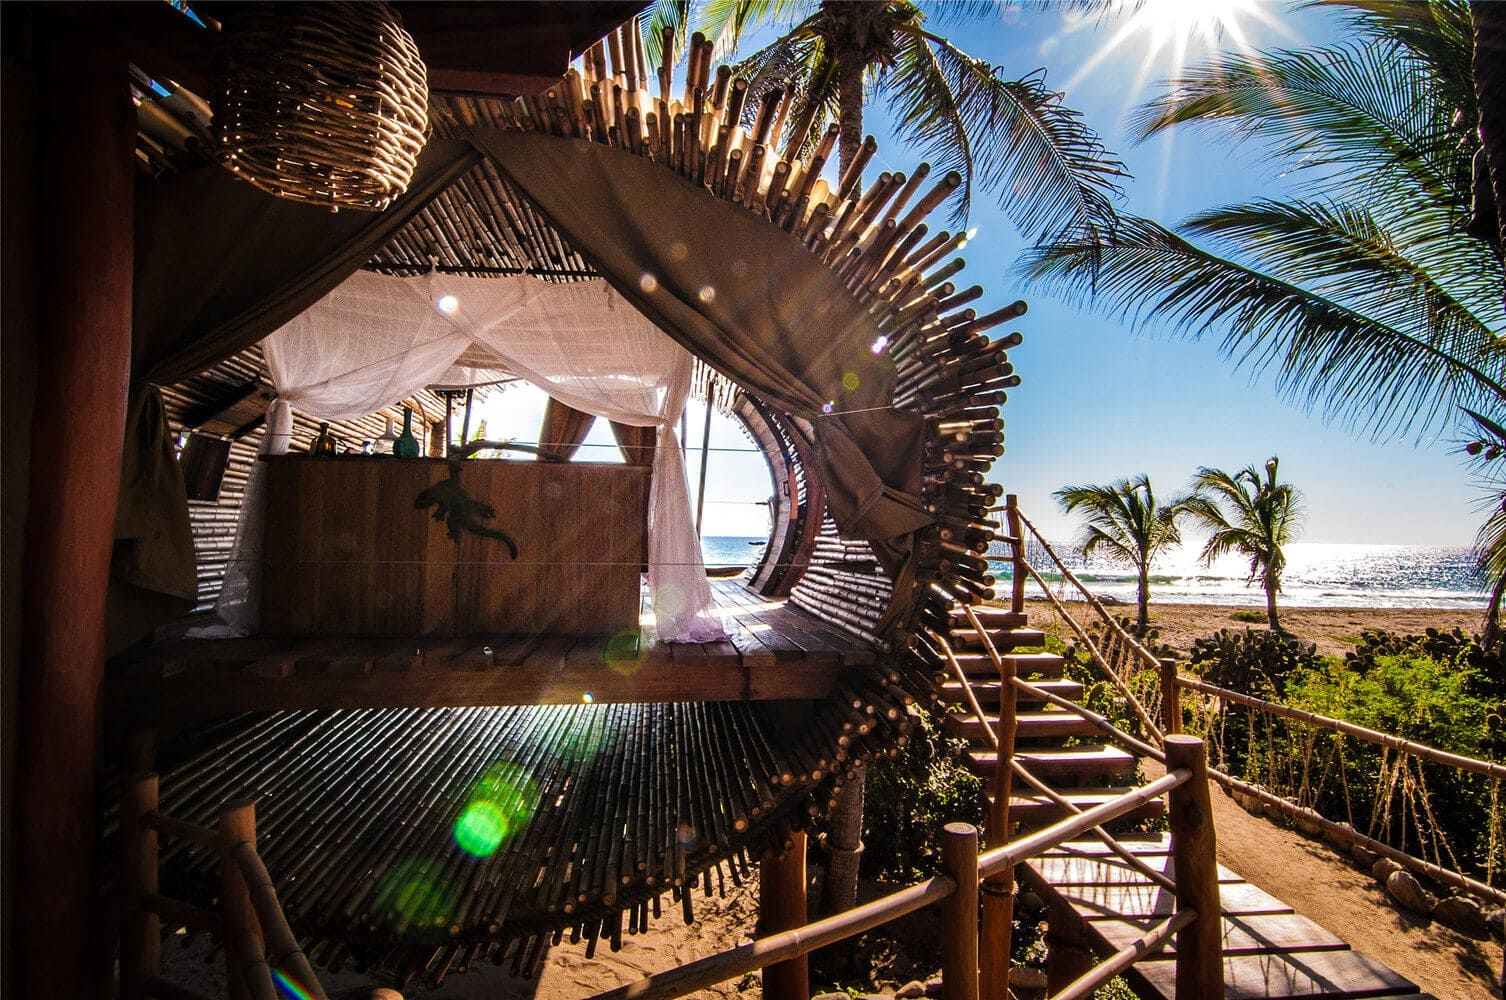 bamboo-treehouse-mexico-5